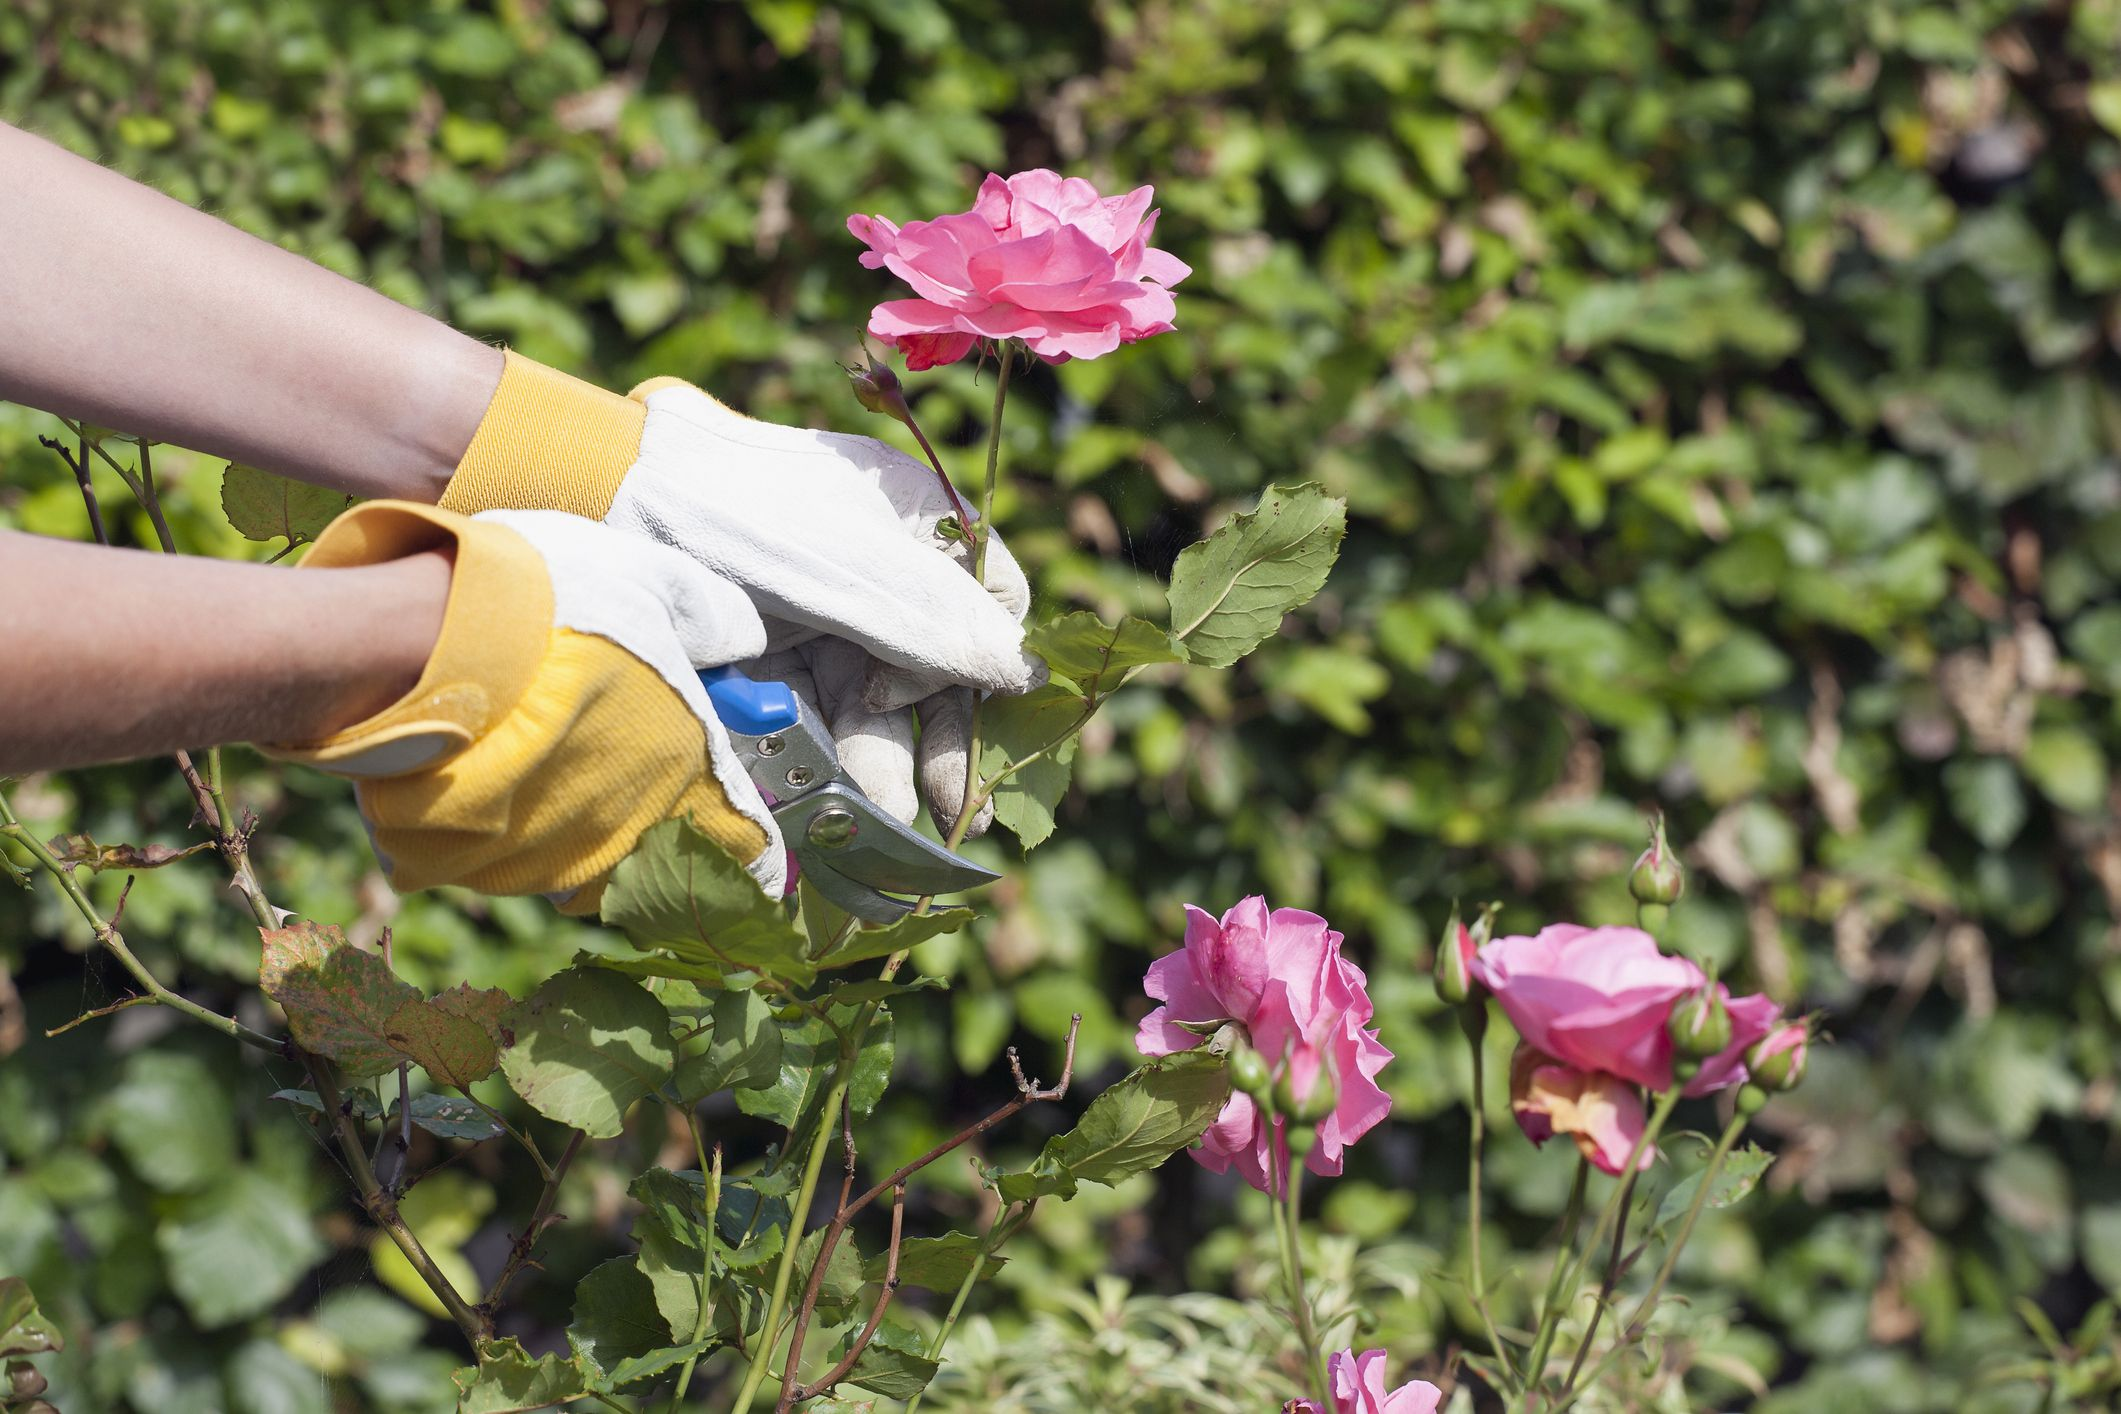 How To Grow Roses From Cuttings Best Way To Propagate Roses